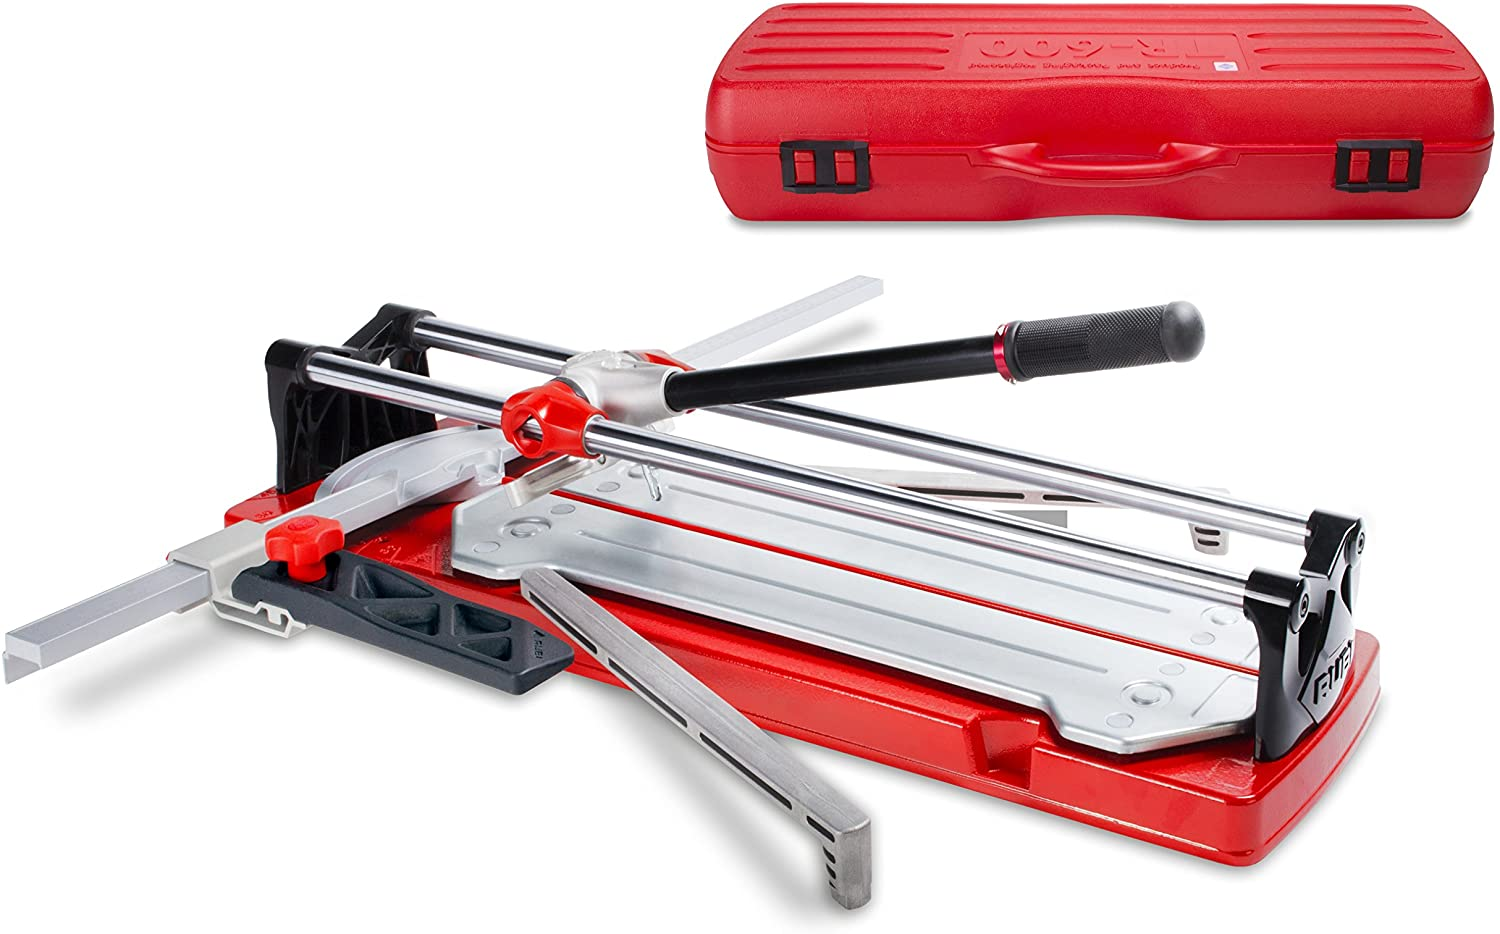 Rubi 17905 - Manual Tile Cutter With carrying case Cut 60cm, TR-600 Magnet